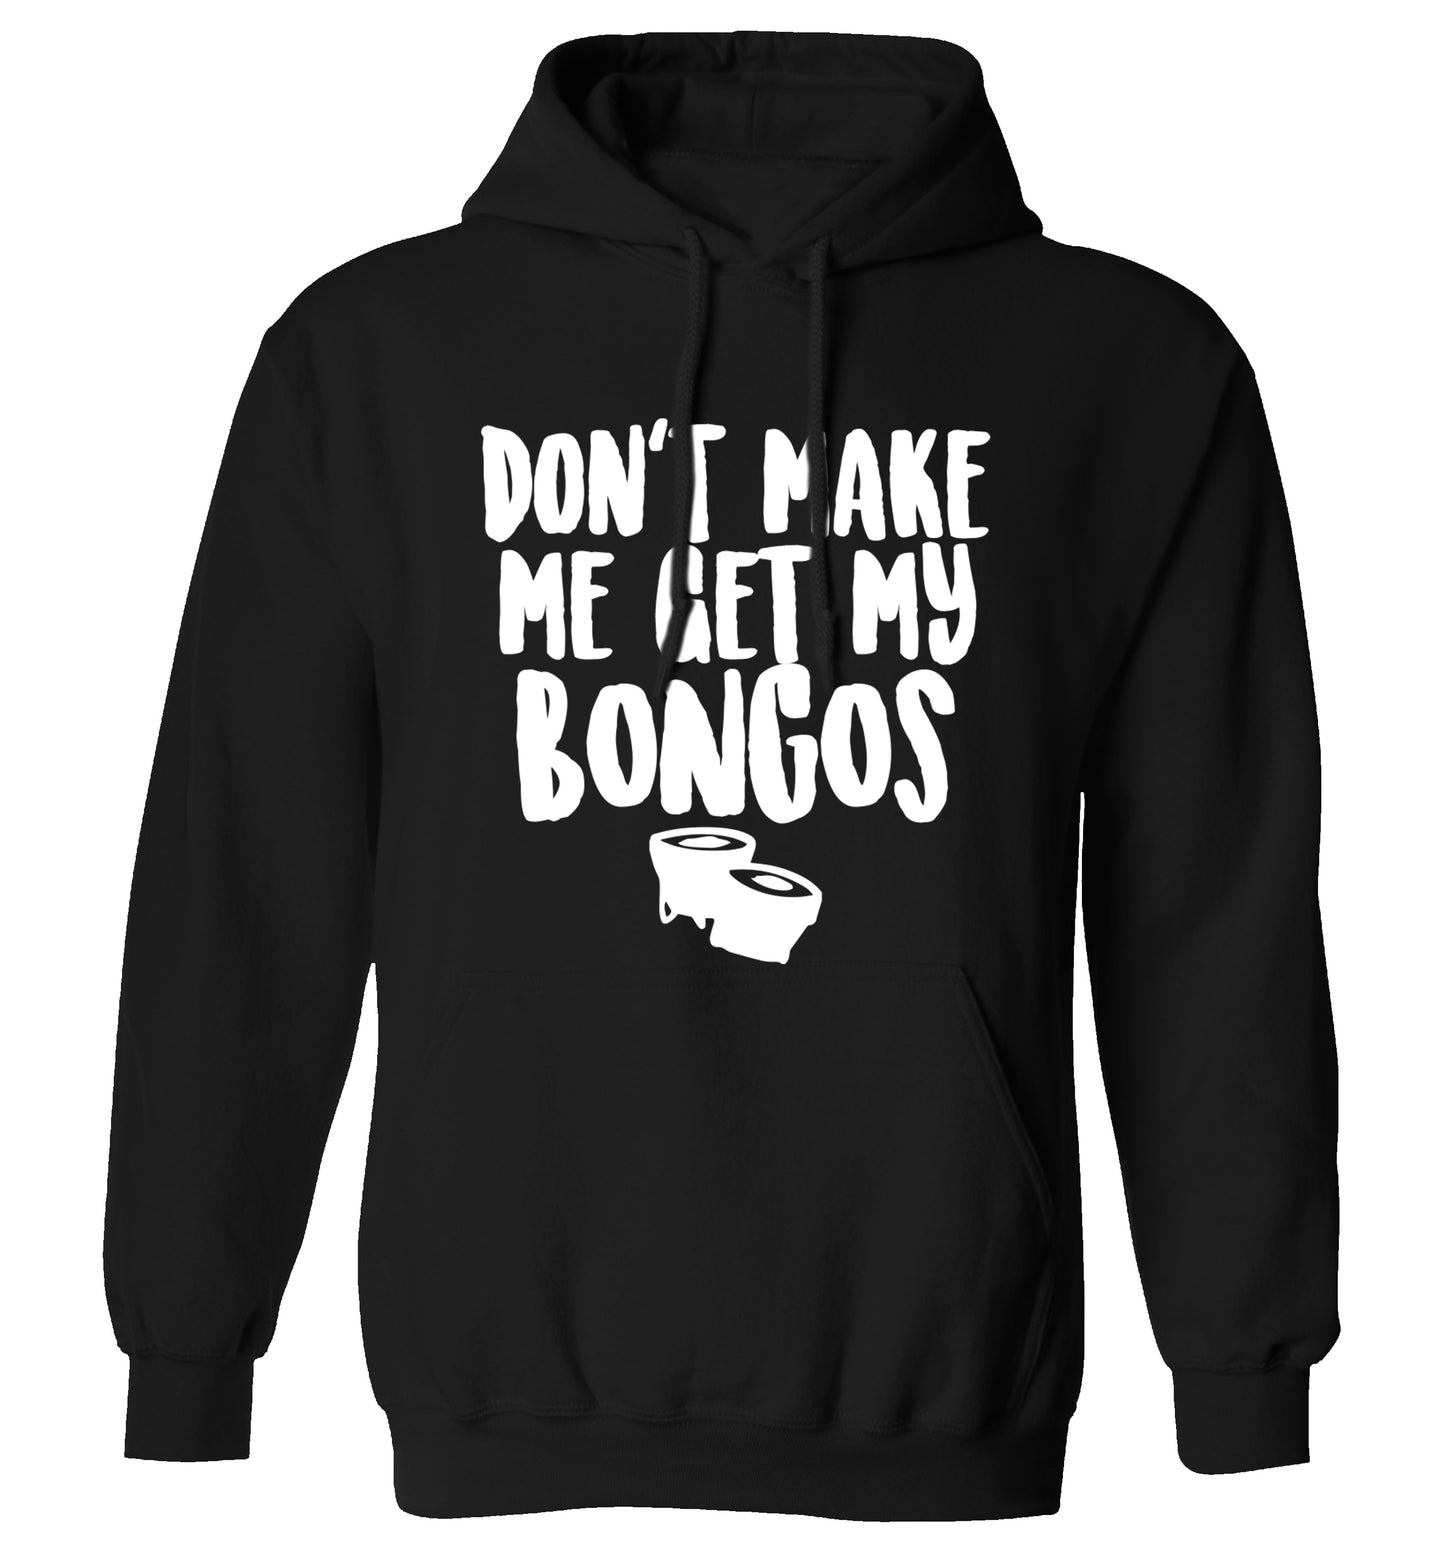 Don't make me get my bongos adults unisex black hoodie 2XL